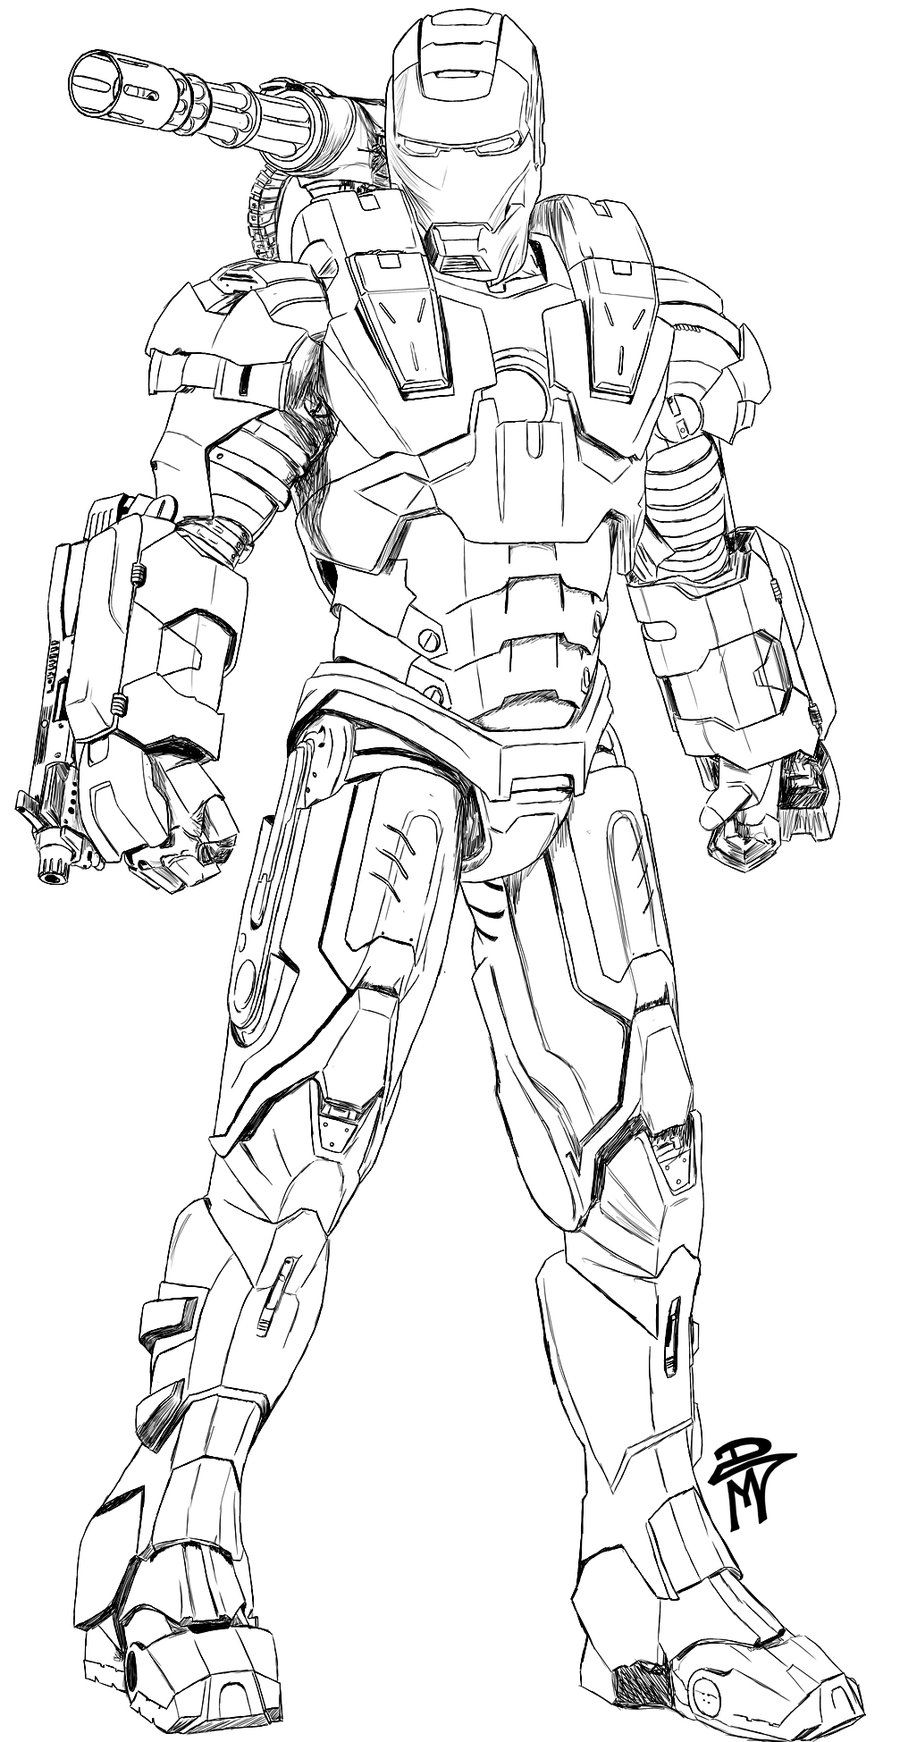 How To Draw War Machine : machine, Machine, Coloring, Pages, Drawing, Superheroes,, Superhero, Pages,